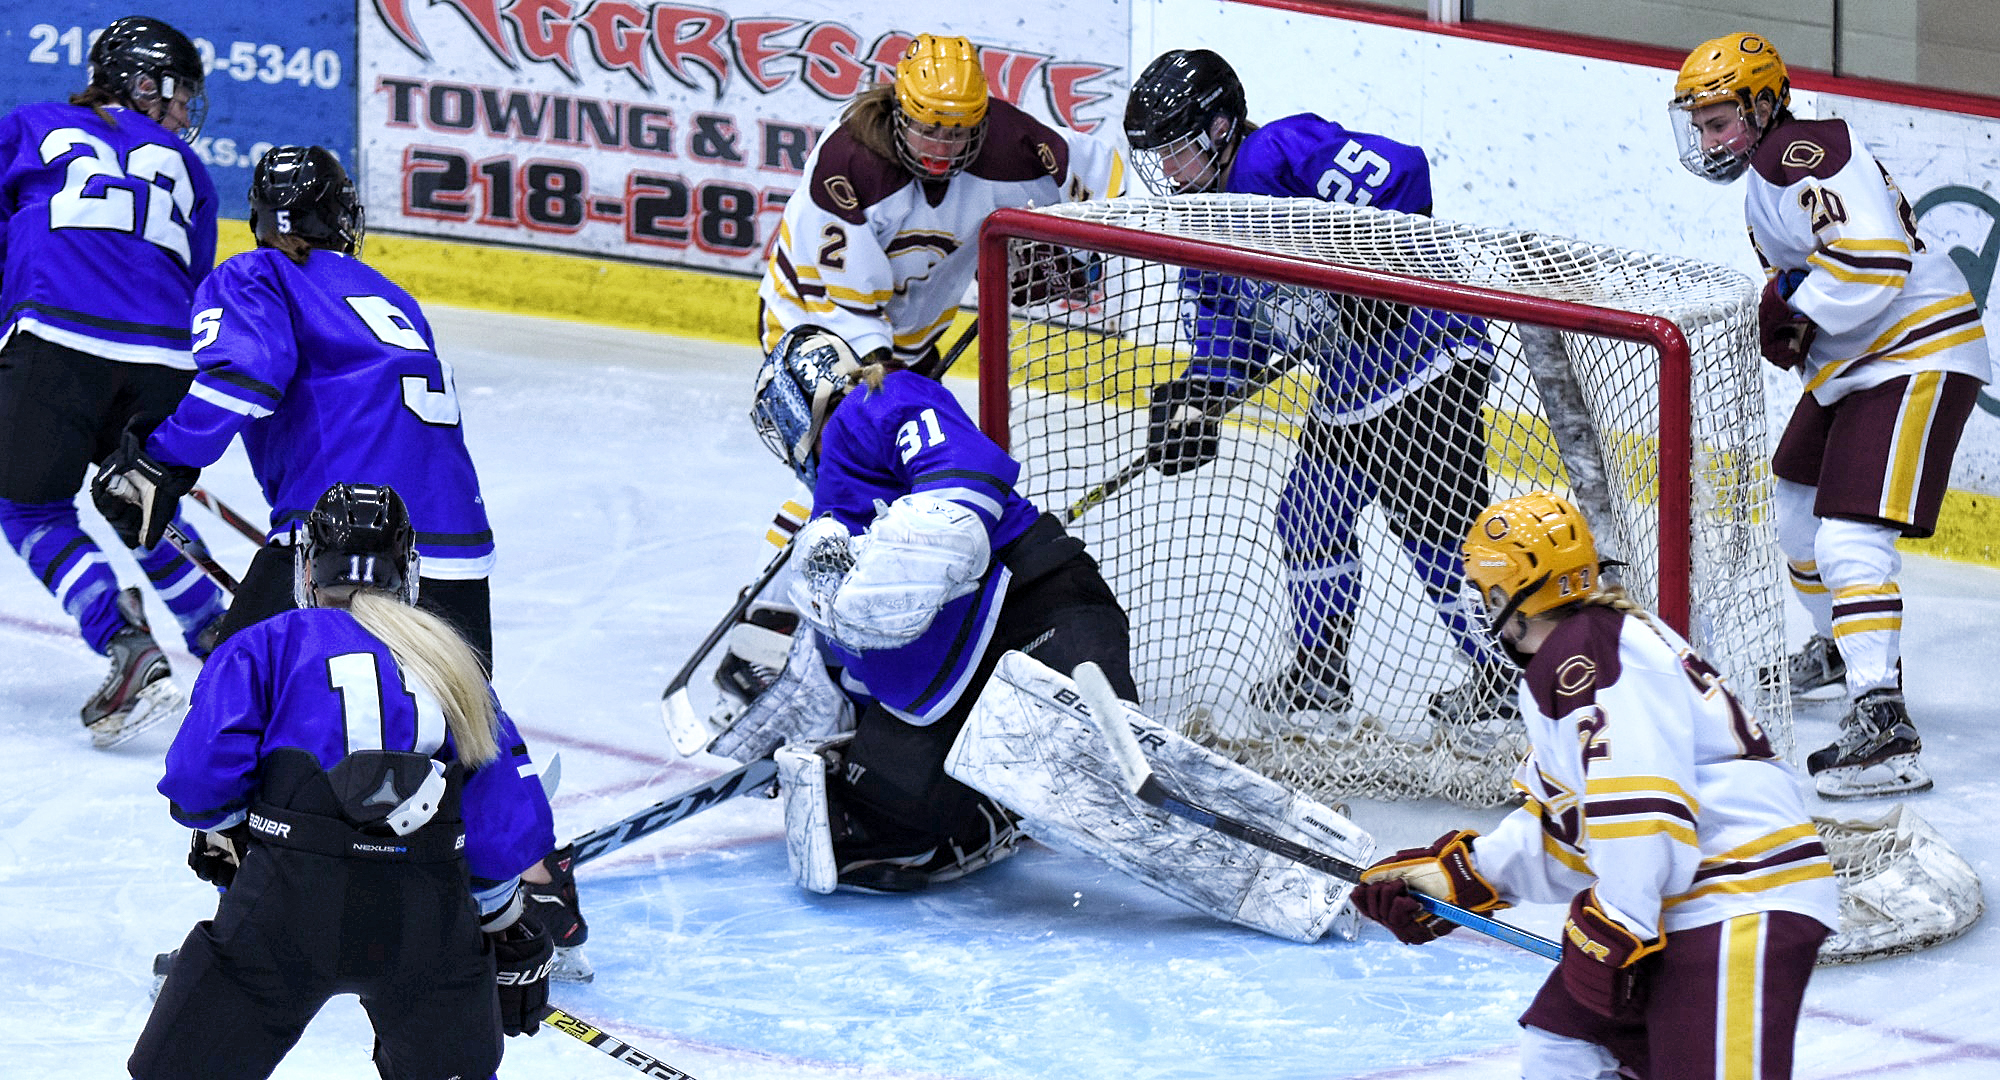 Amanda Flemming (#2) follows the puck slide into the net for the Cobbers' in their 3-1 win over Finlandia.